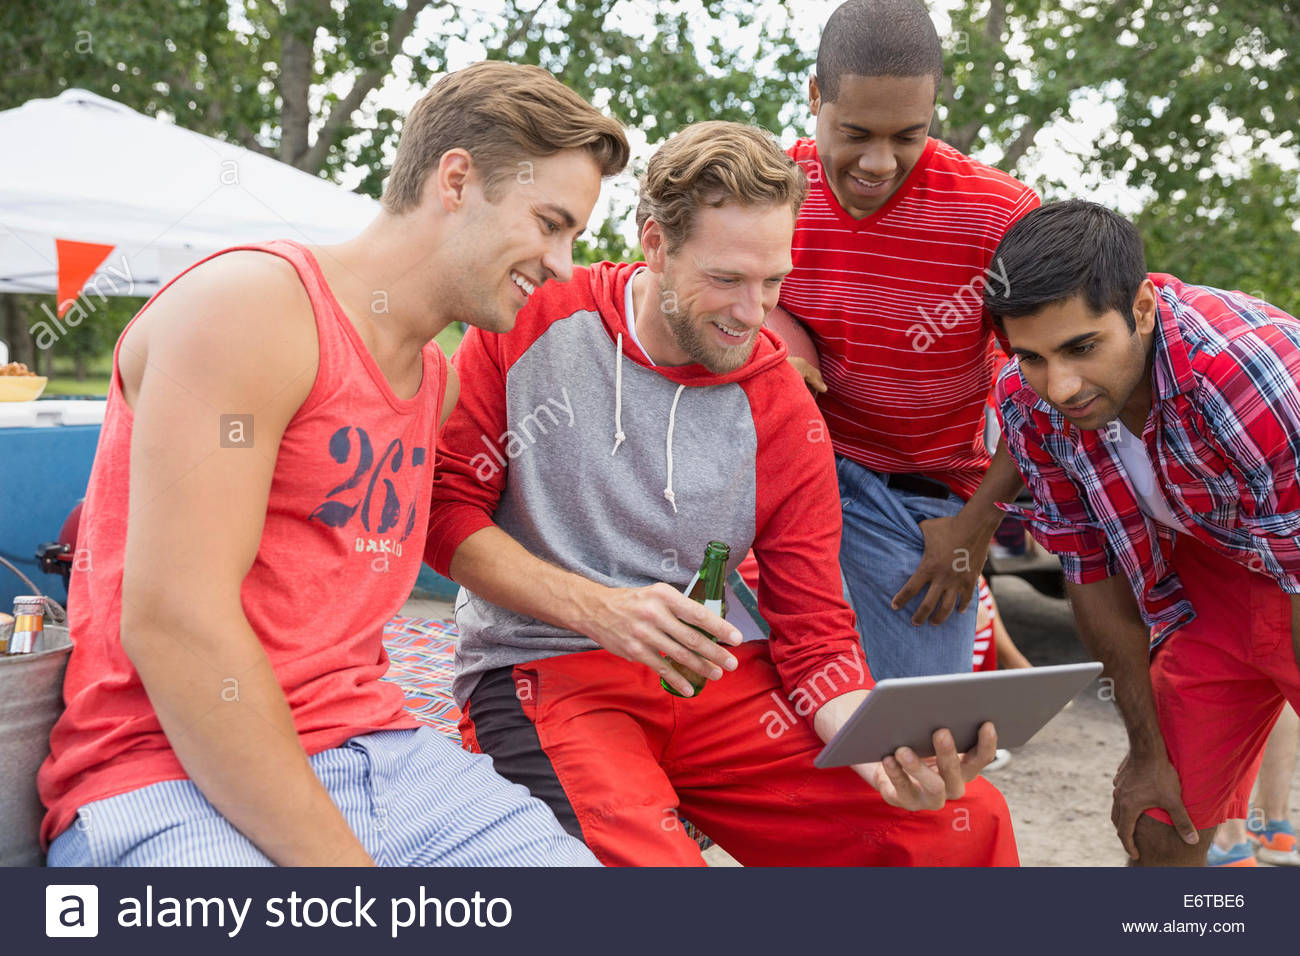 Men using digital tablet at tailgate barbecue - Stock Image